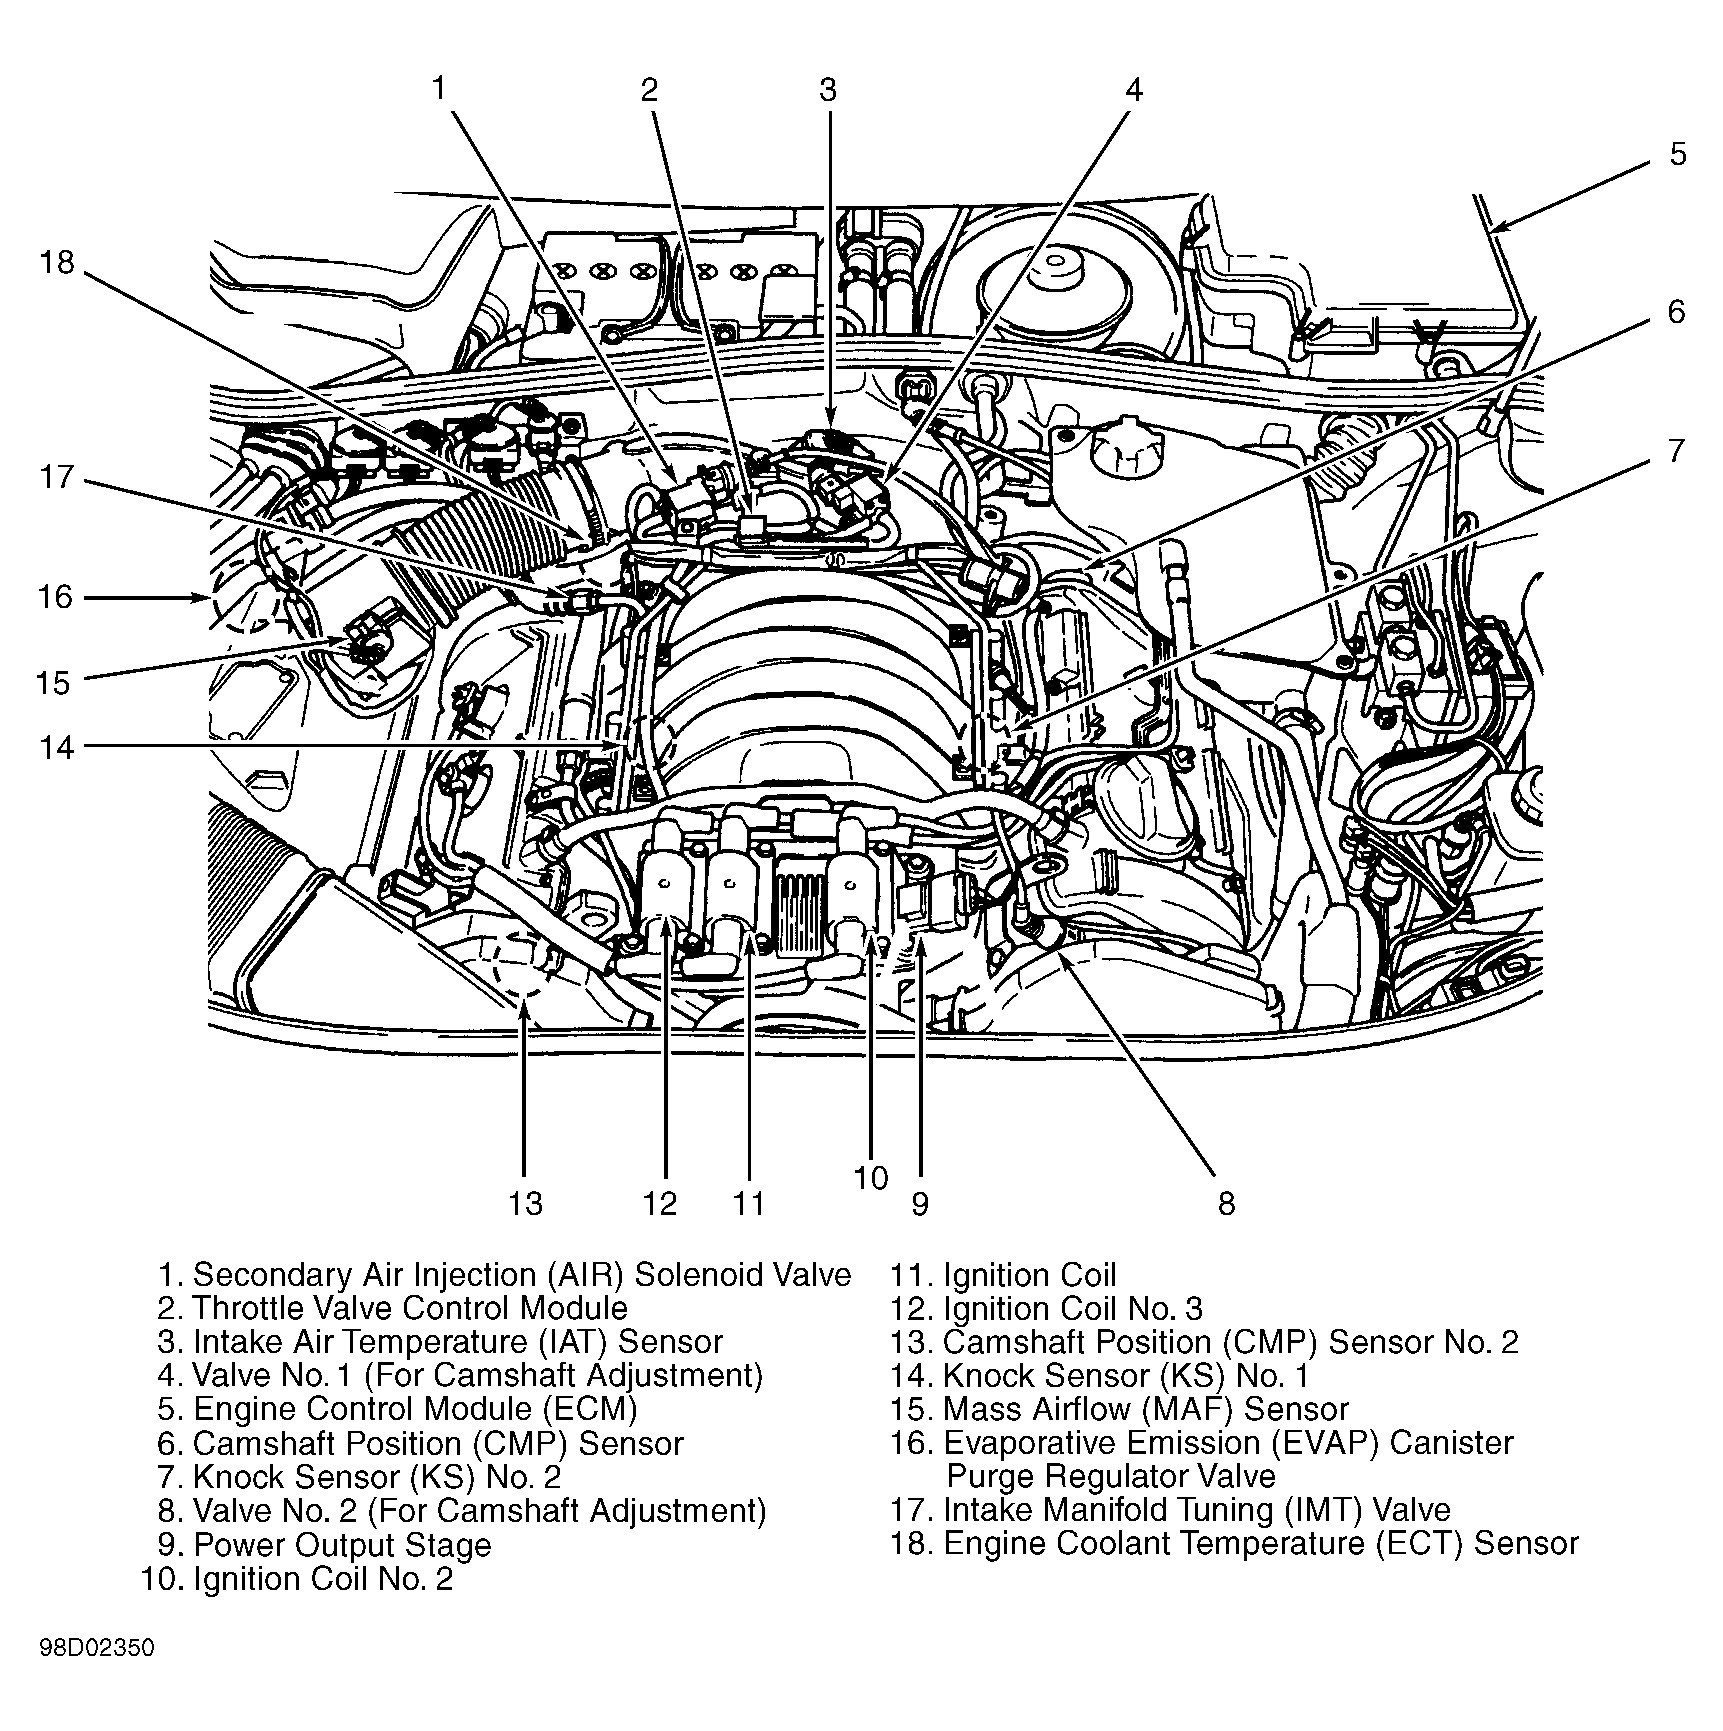 2001 Vw Passat 1 8 T Engine Diagram 2 7t Engine Diagram